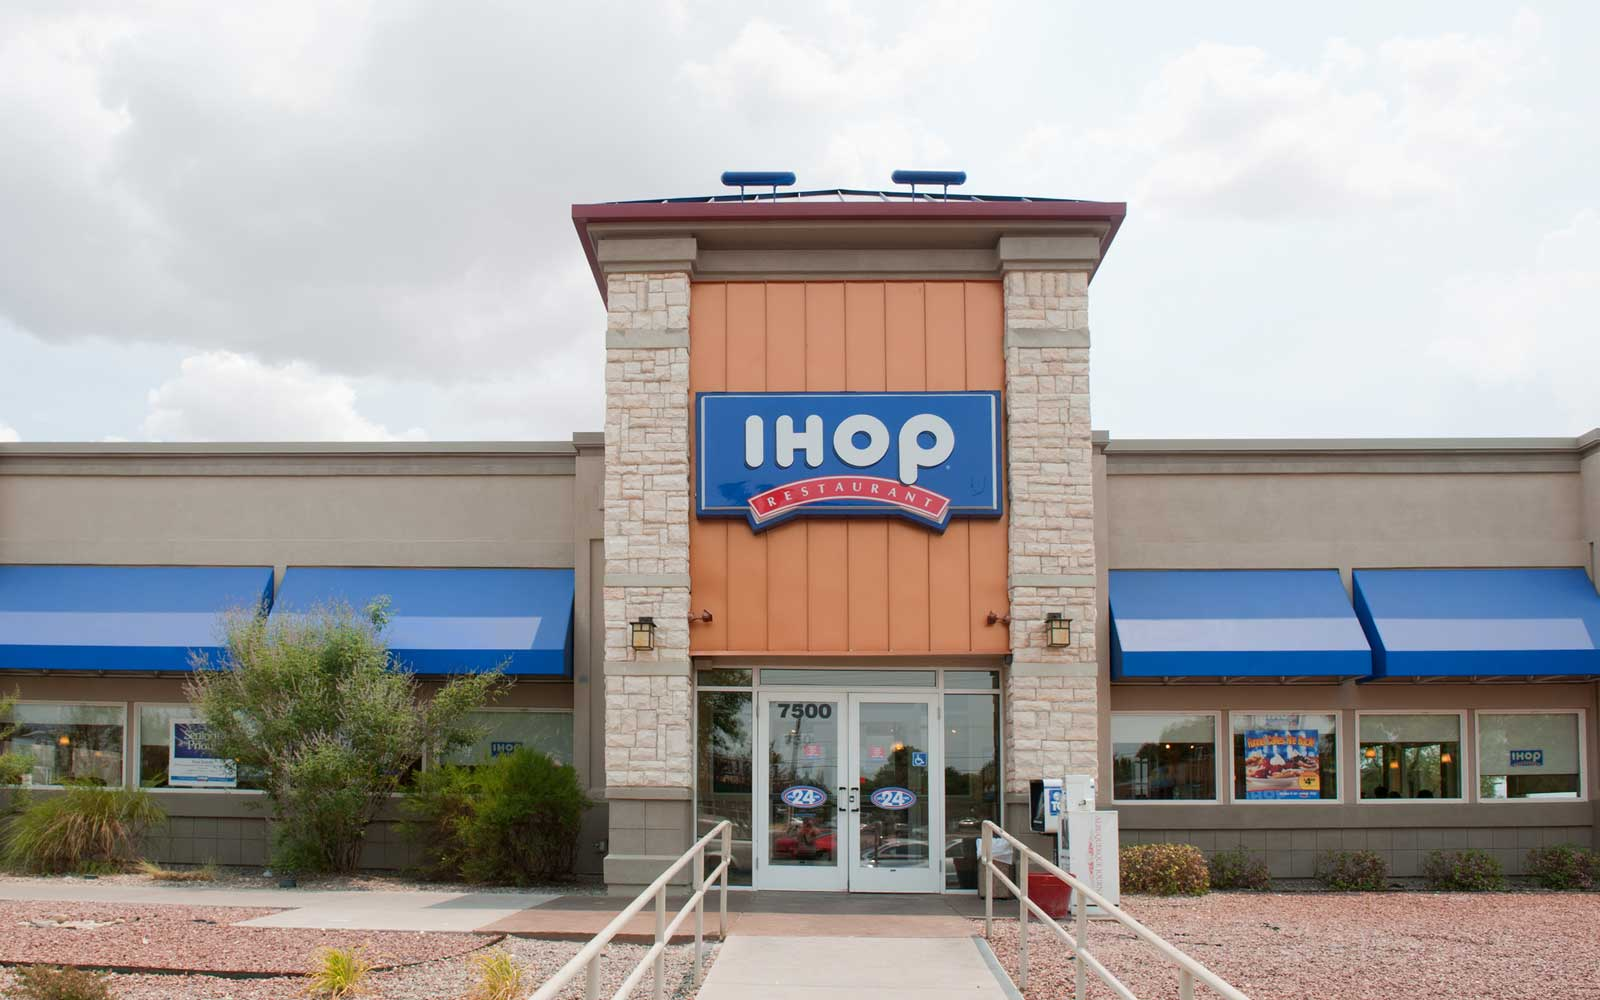 International House of Pancakes - IHOP Restaurant